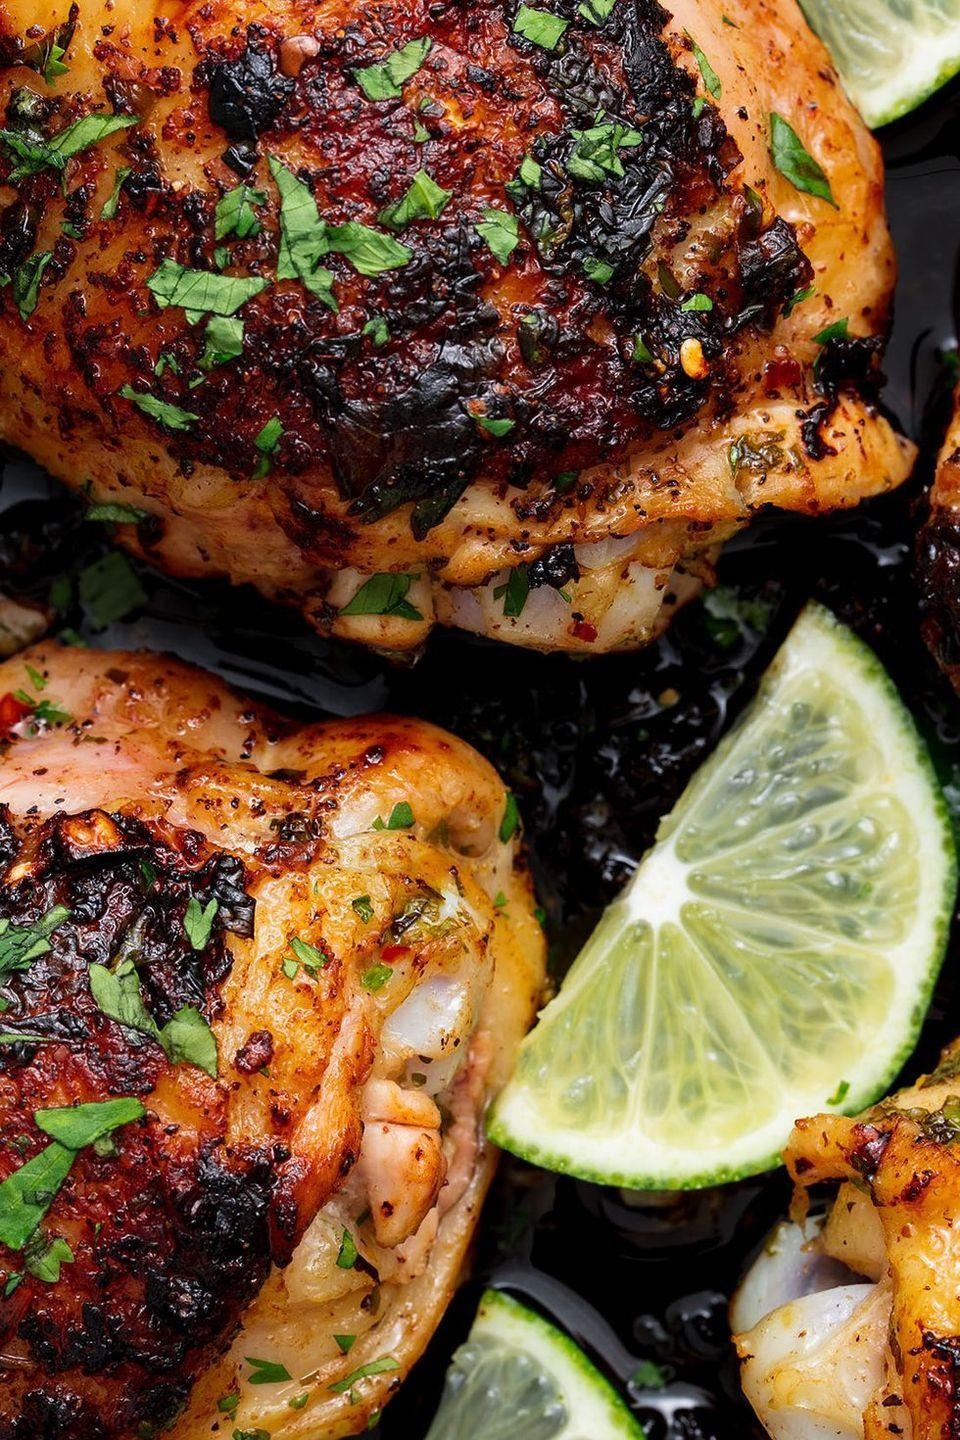 """<p>Coriander and lime is a classic duo that we can't get enough of.</p><p>Get the <a href=""""http://www.delish.com/uk/cooking/recipes/a30243568/cilantro-lime-chicken-recipe/"""" rel=""""nofollow noopener"""" target=""""_blank"""" data-ylk=""""slk:Coriander Lime Chicken"""" class=""""link rapid-noclick-resp"""">Coriander Lime Chicken</a> recipe.</p>"""